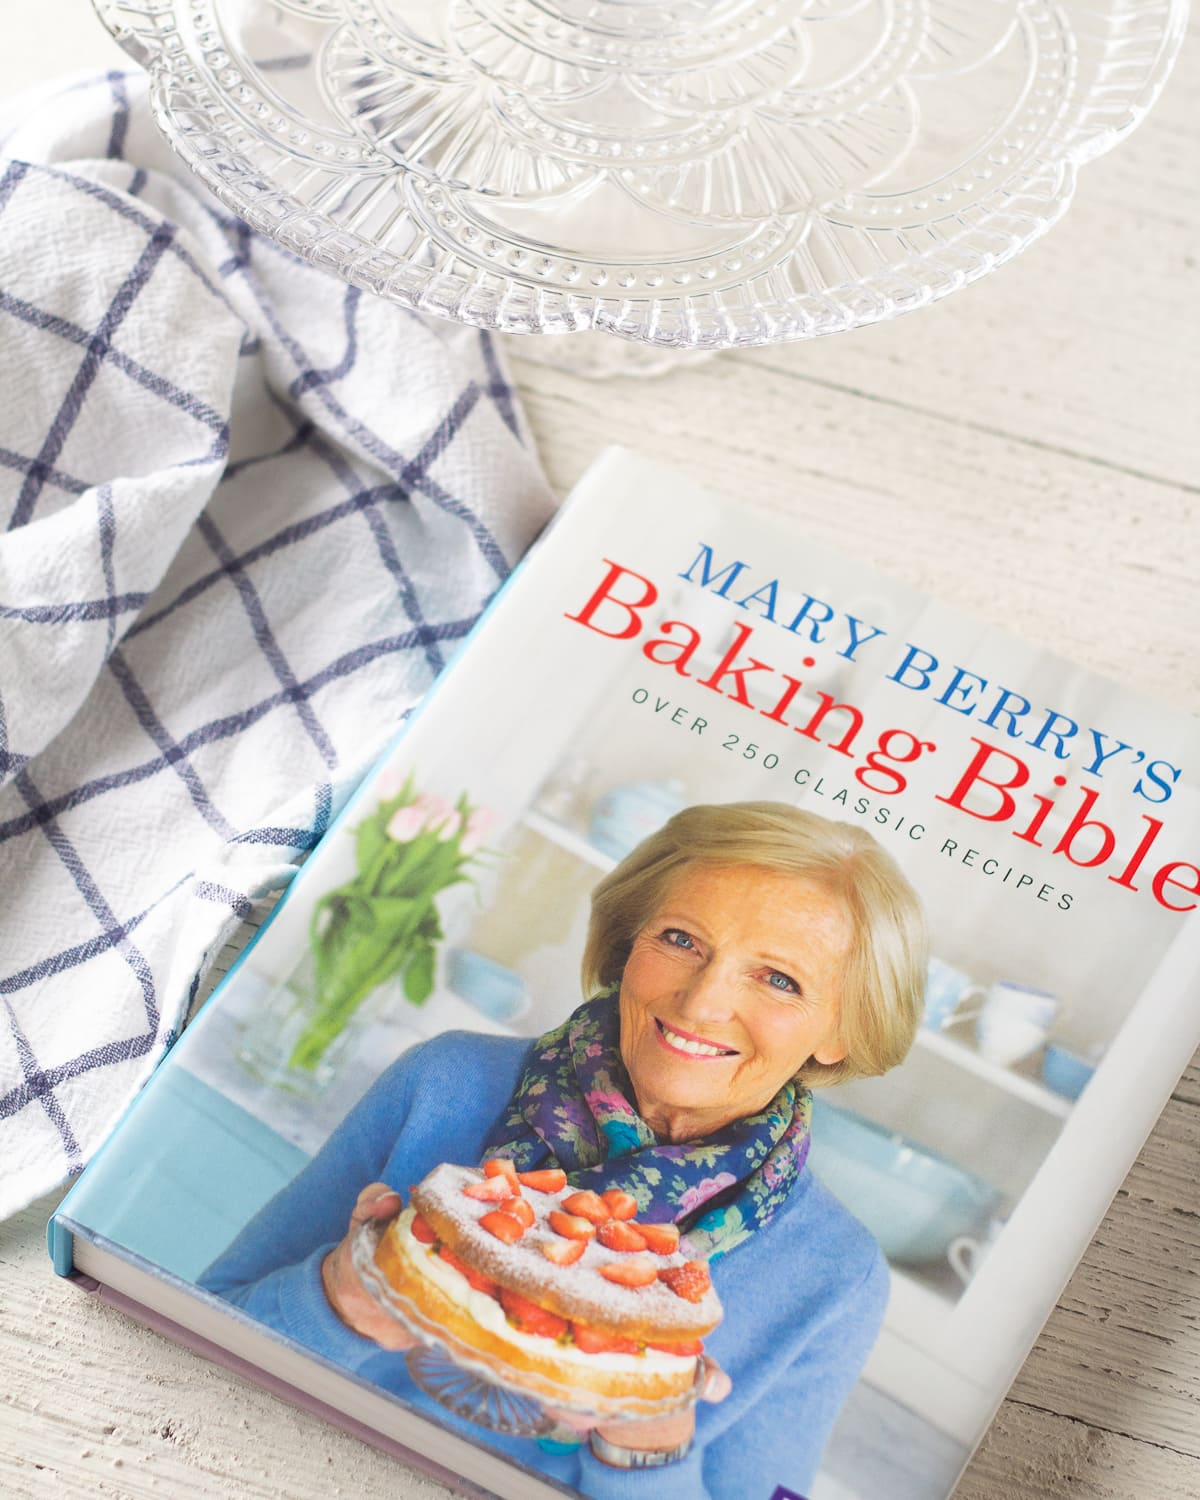 A Mary Berry cookbook, cake stand, and IKEA towel on a wooden surface.